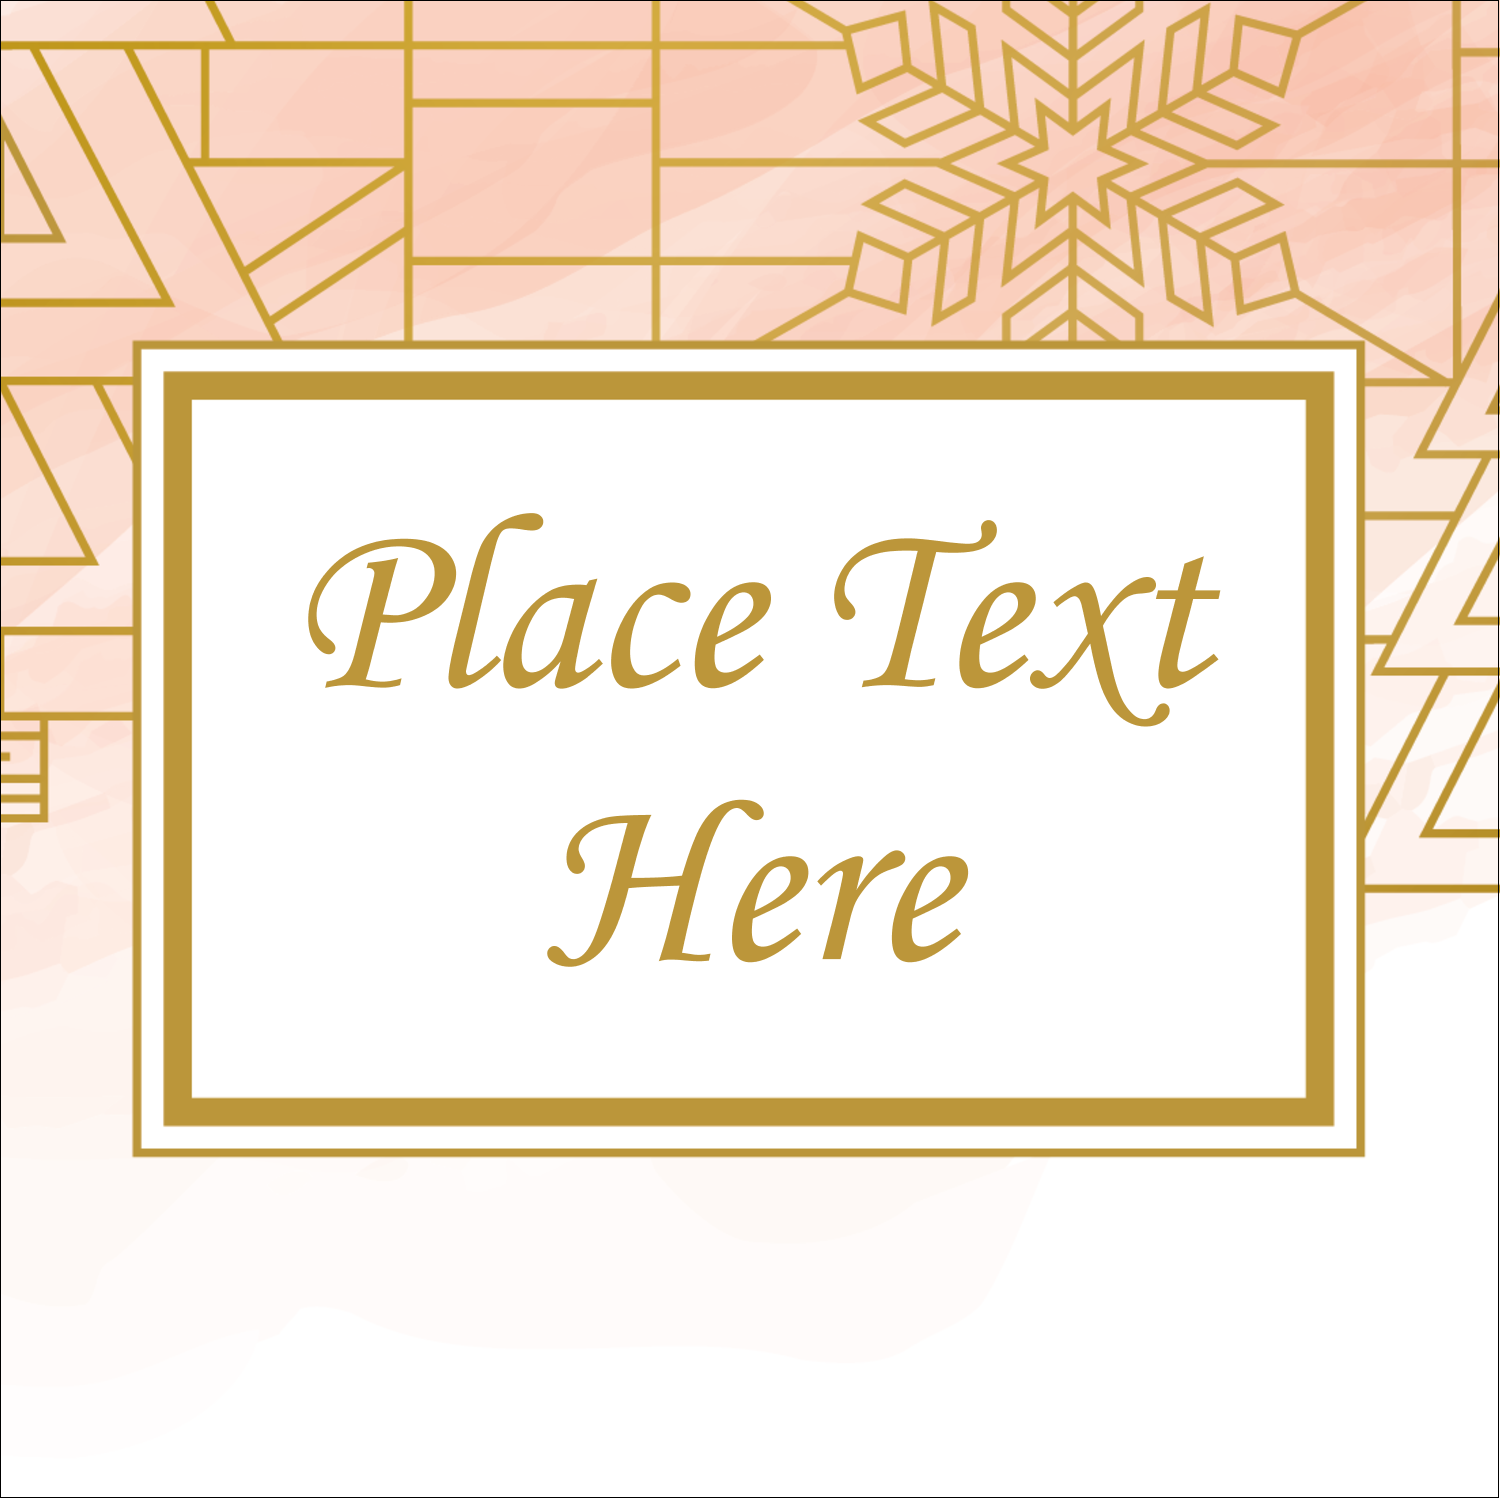 Bring unique holiday style to projects with pre-designed Geometric Winter templates.